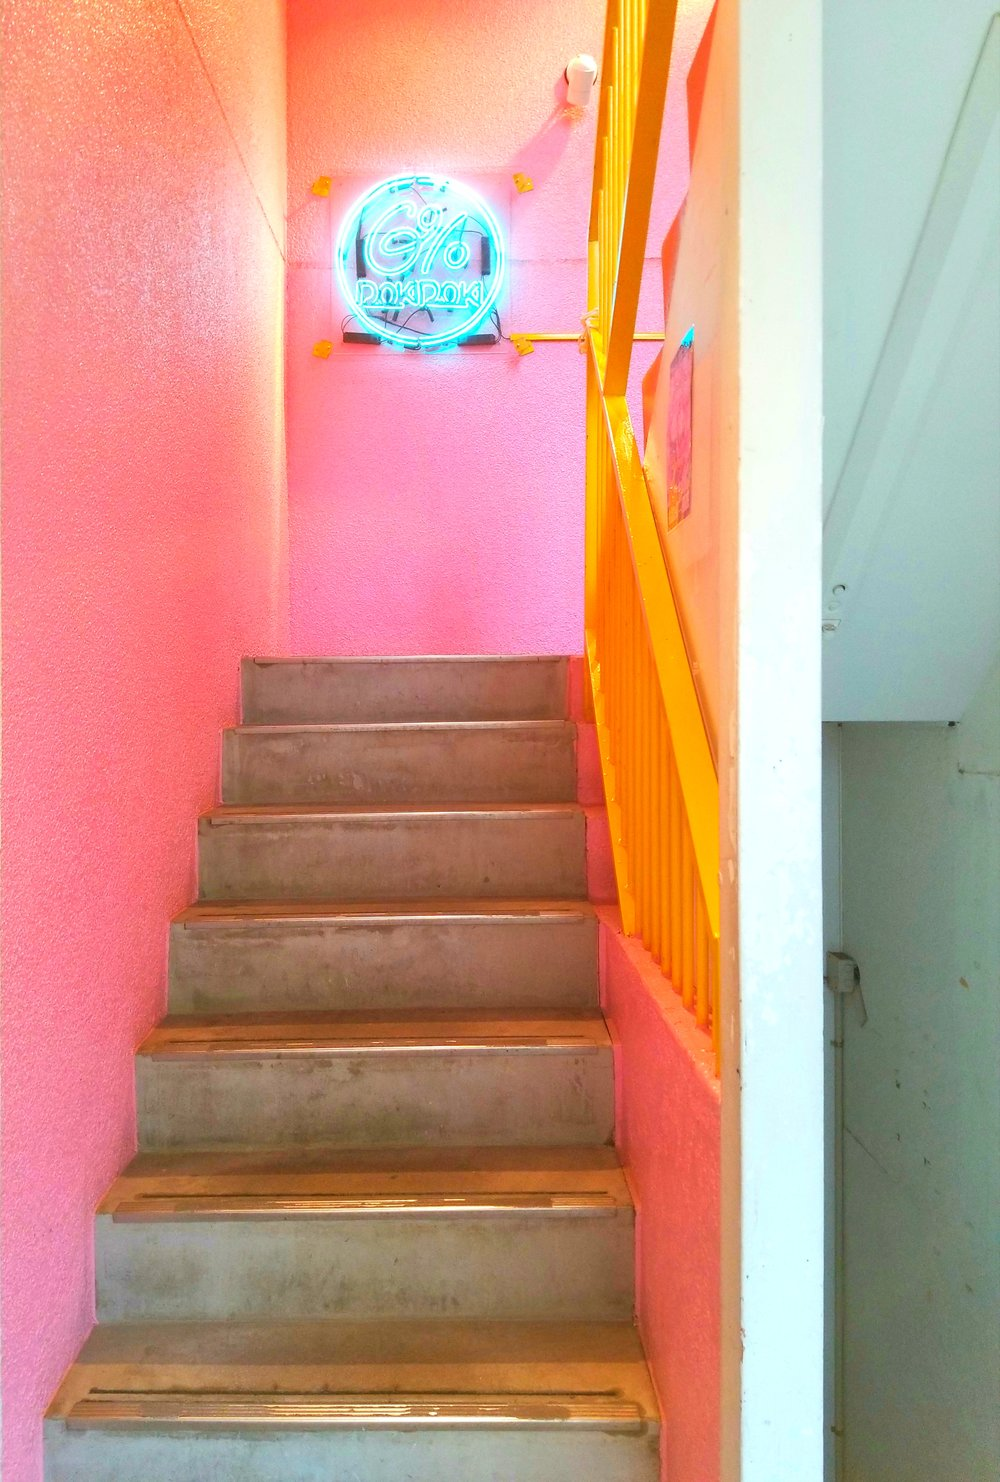 uprooted-traveler-harajuku-foolproof-guide-to-tokyo-stairs